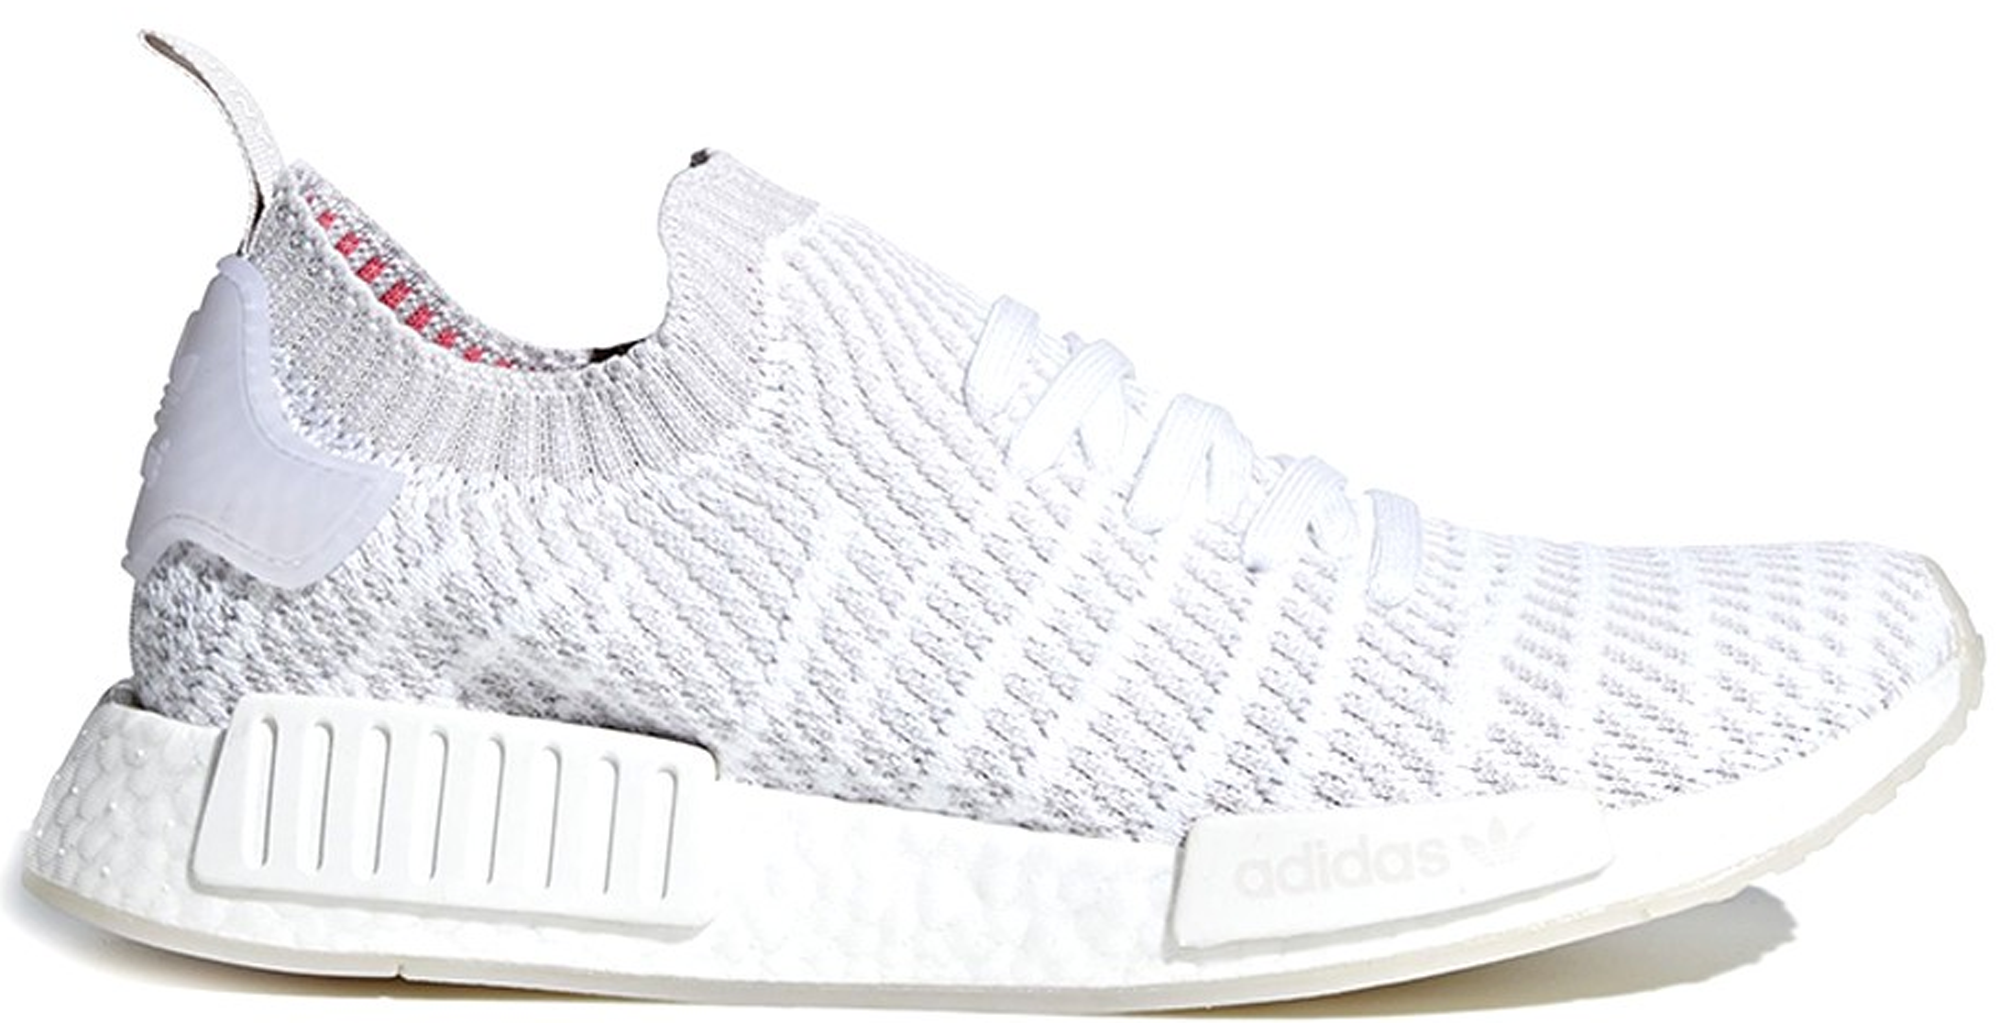 adidas NMD R1 STLT Cloud White